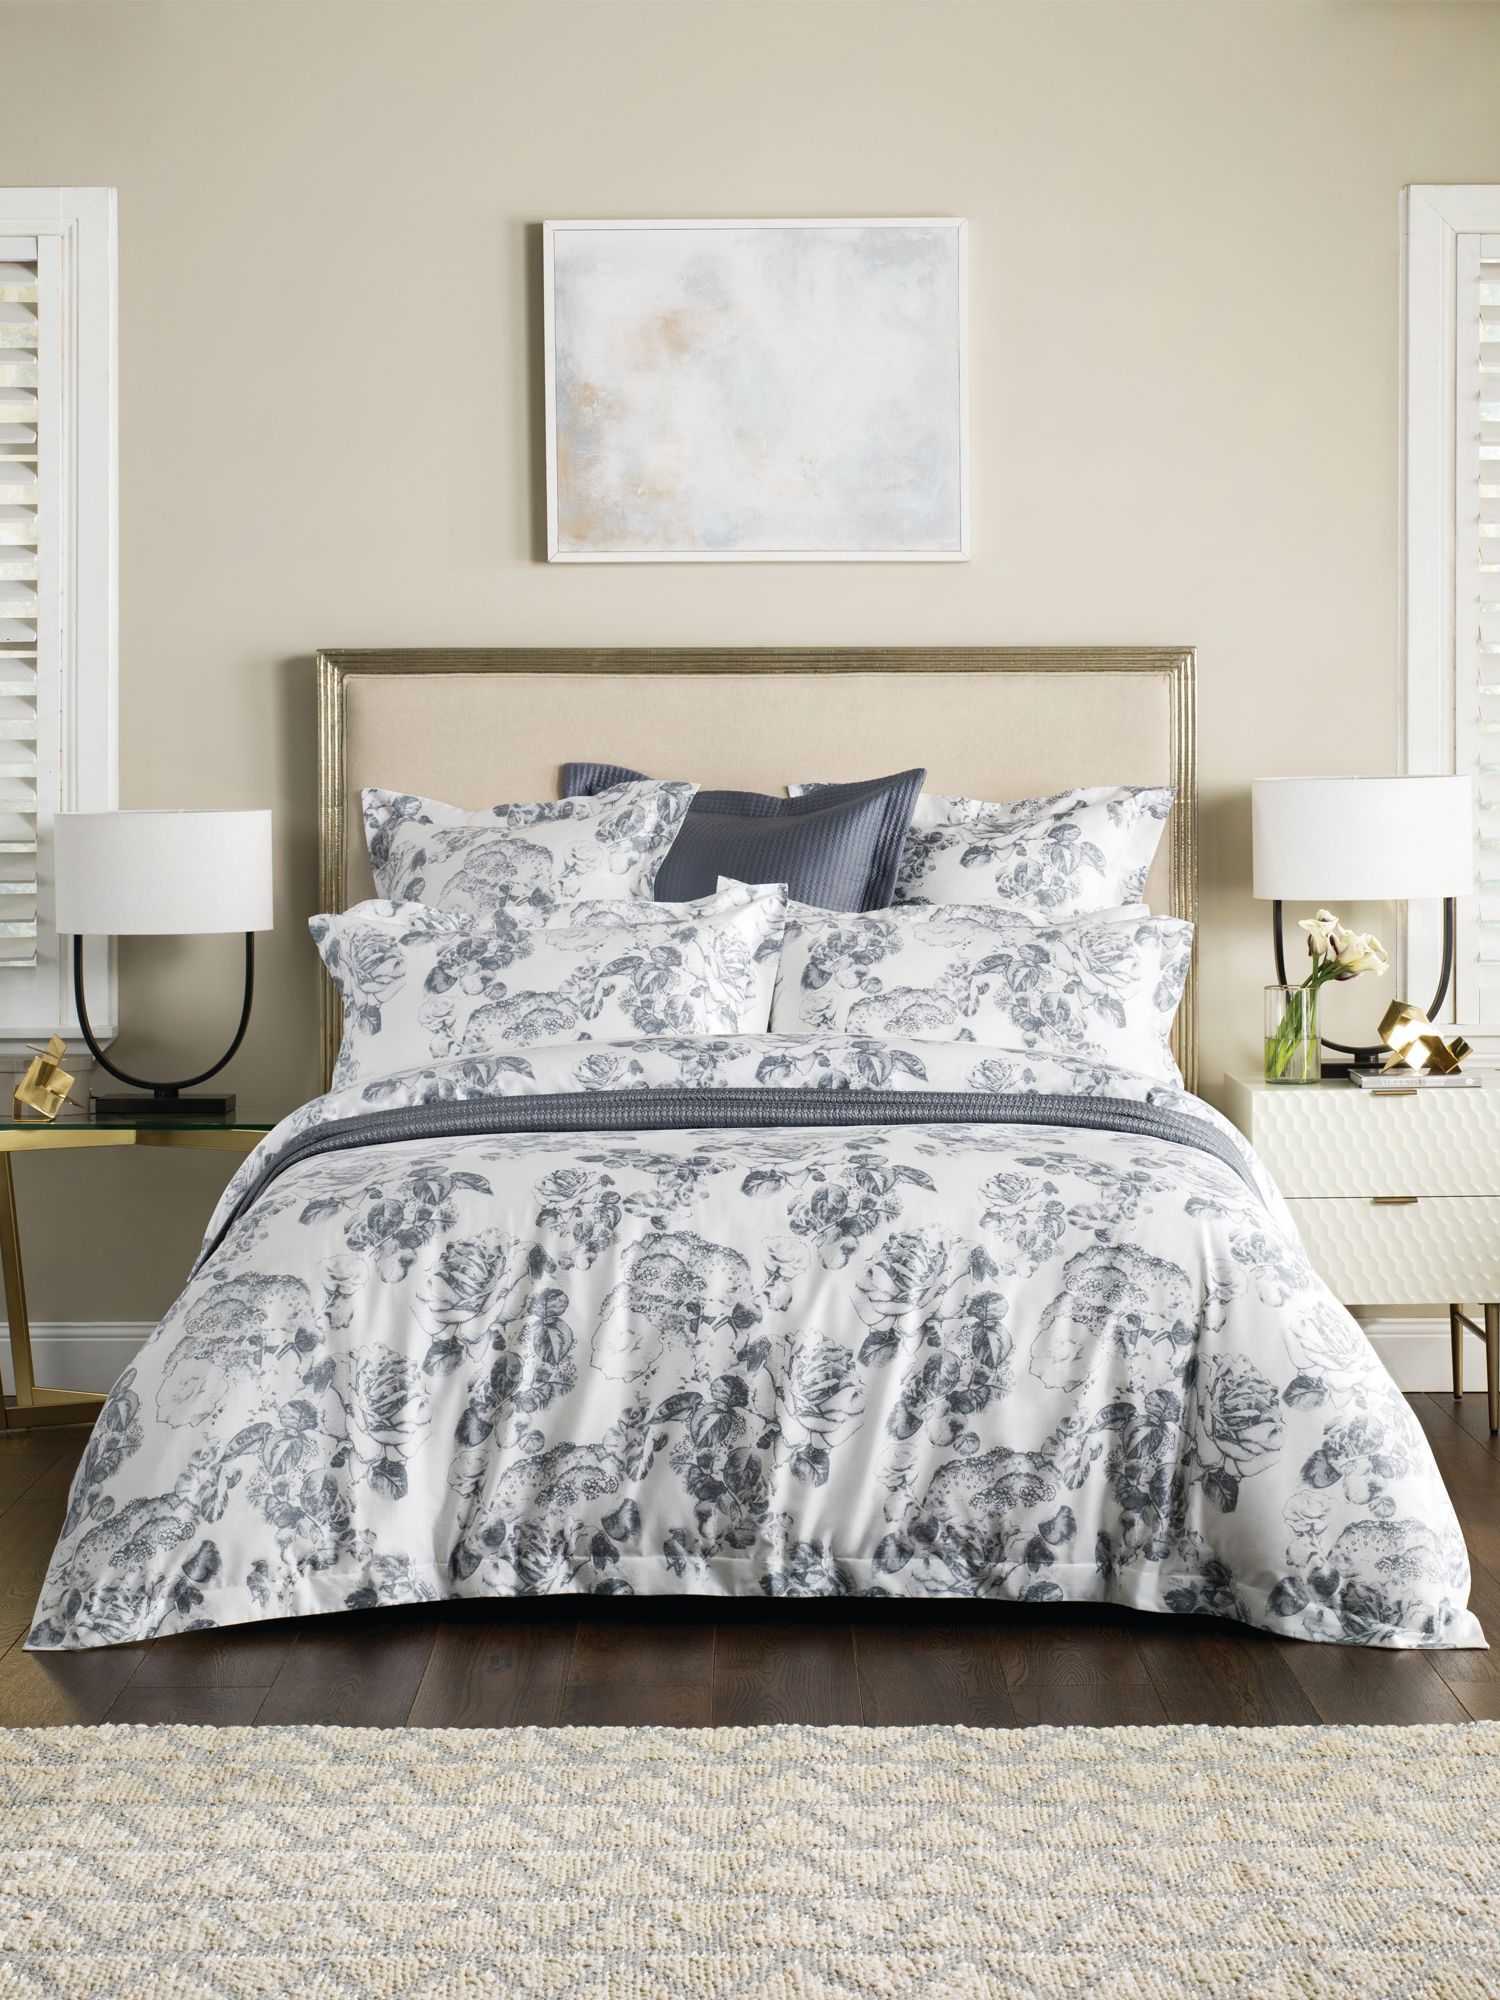 Cheap Doona Covers Sheridan Duvet Cover Shop For Cheap Home Textiles And